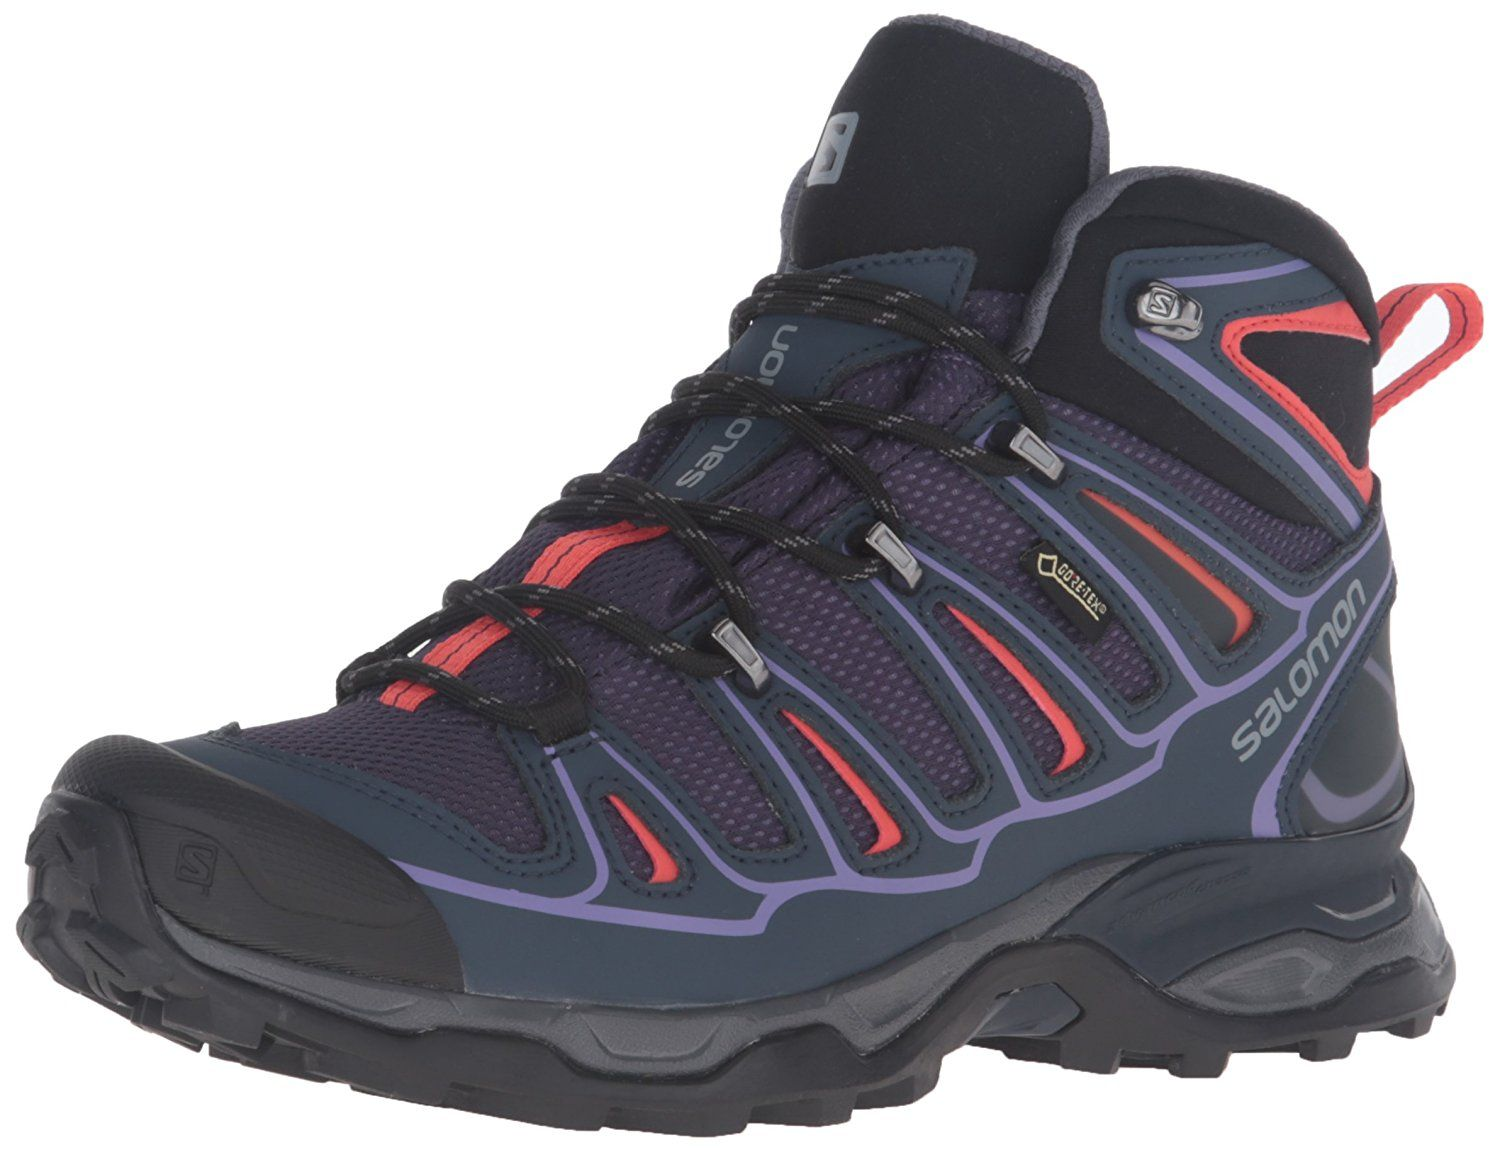 15b16086097a1 Salomon Women s X Ultra Mid 2 GTX W Hiking Boot   Read more at the image  link.